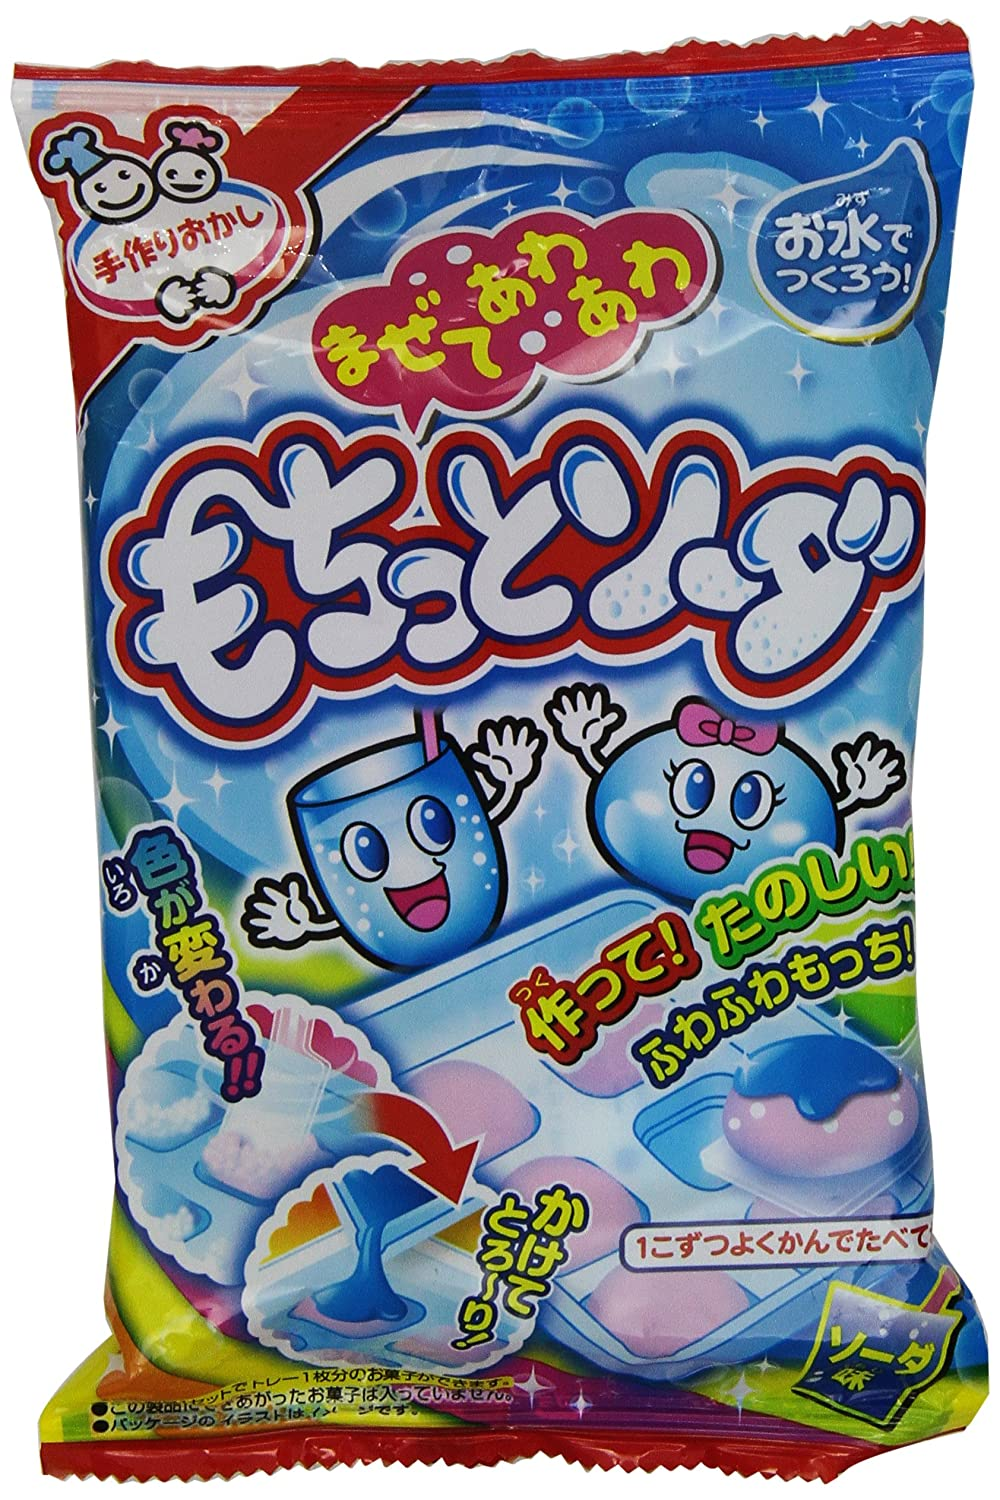 "Soda Fizz Candy Shaped Candy""mochitto Soda"